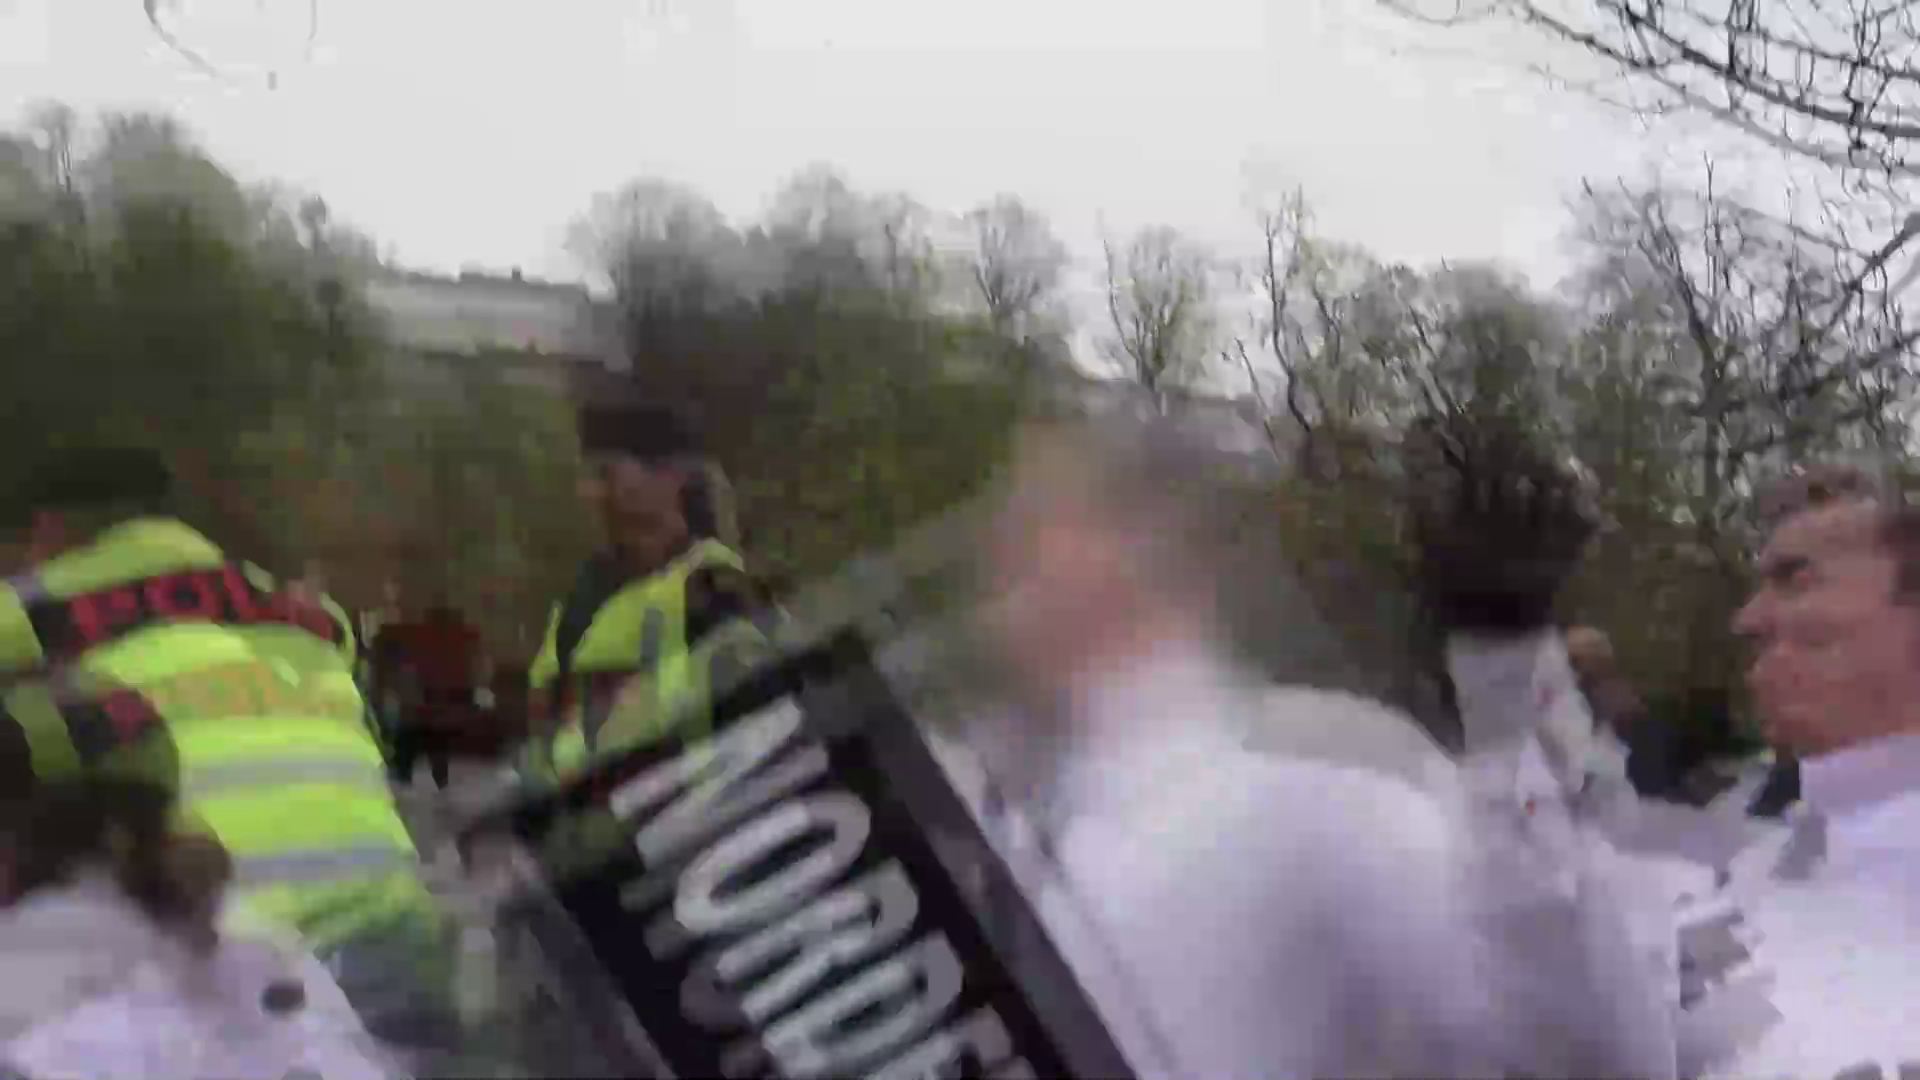 Nordic Resistance Movement - Demonstration in Kungälv, Sweden, 2019